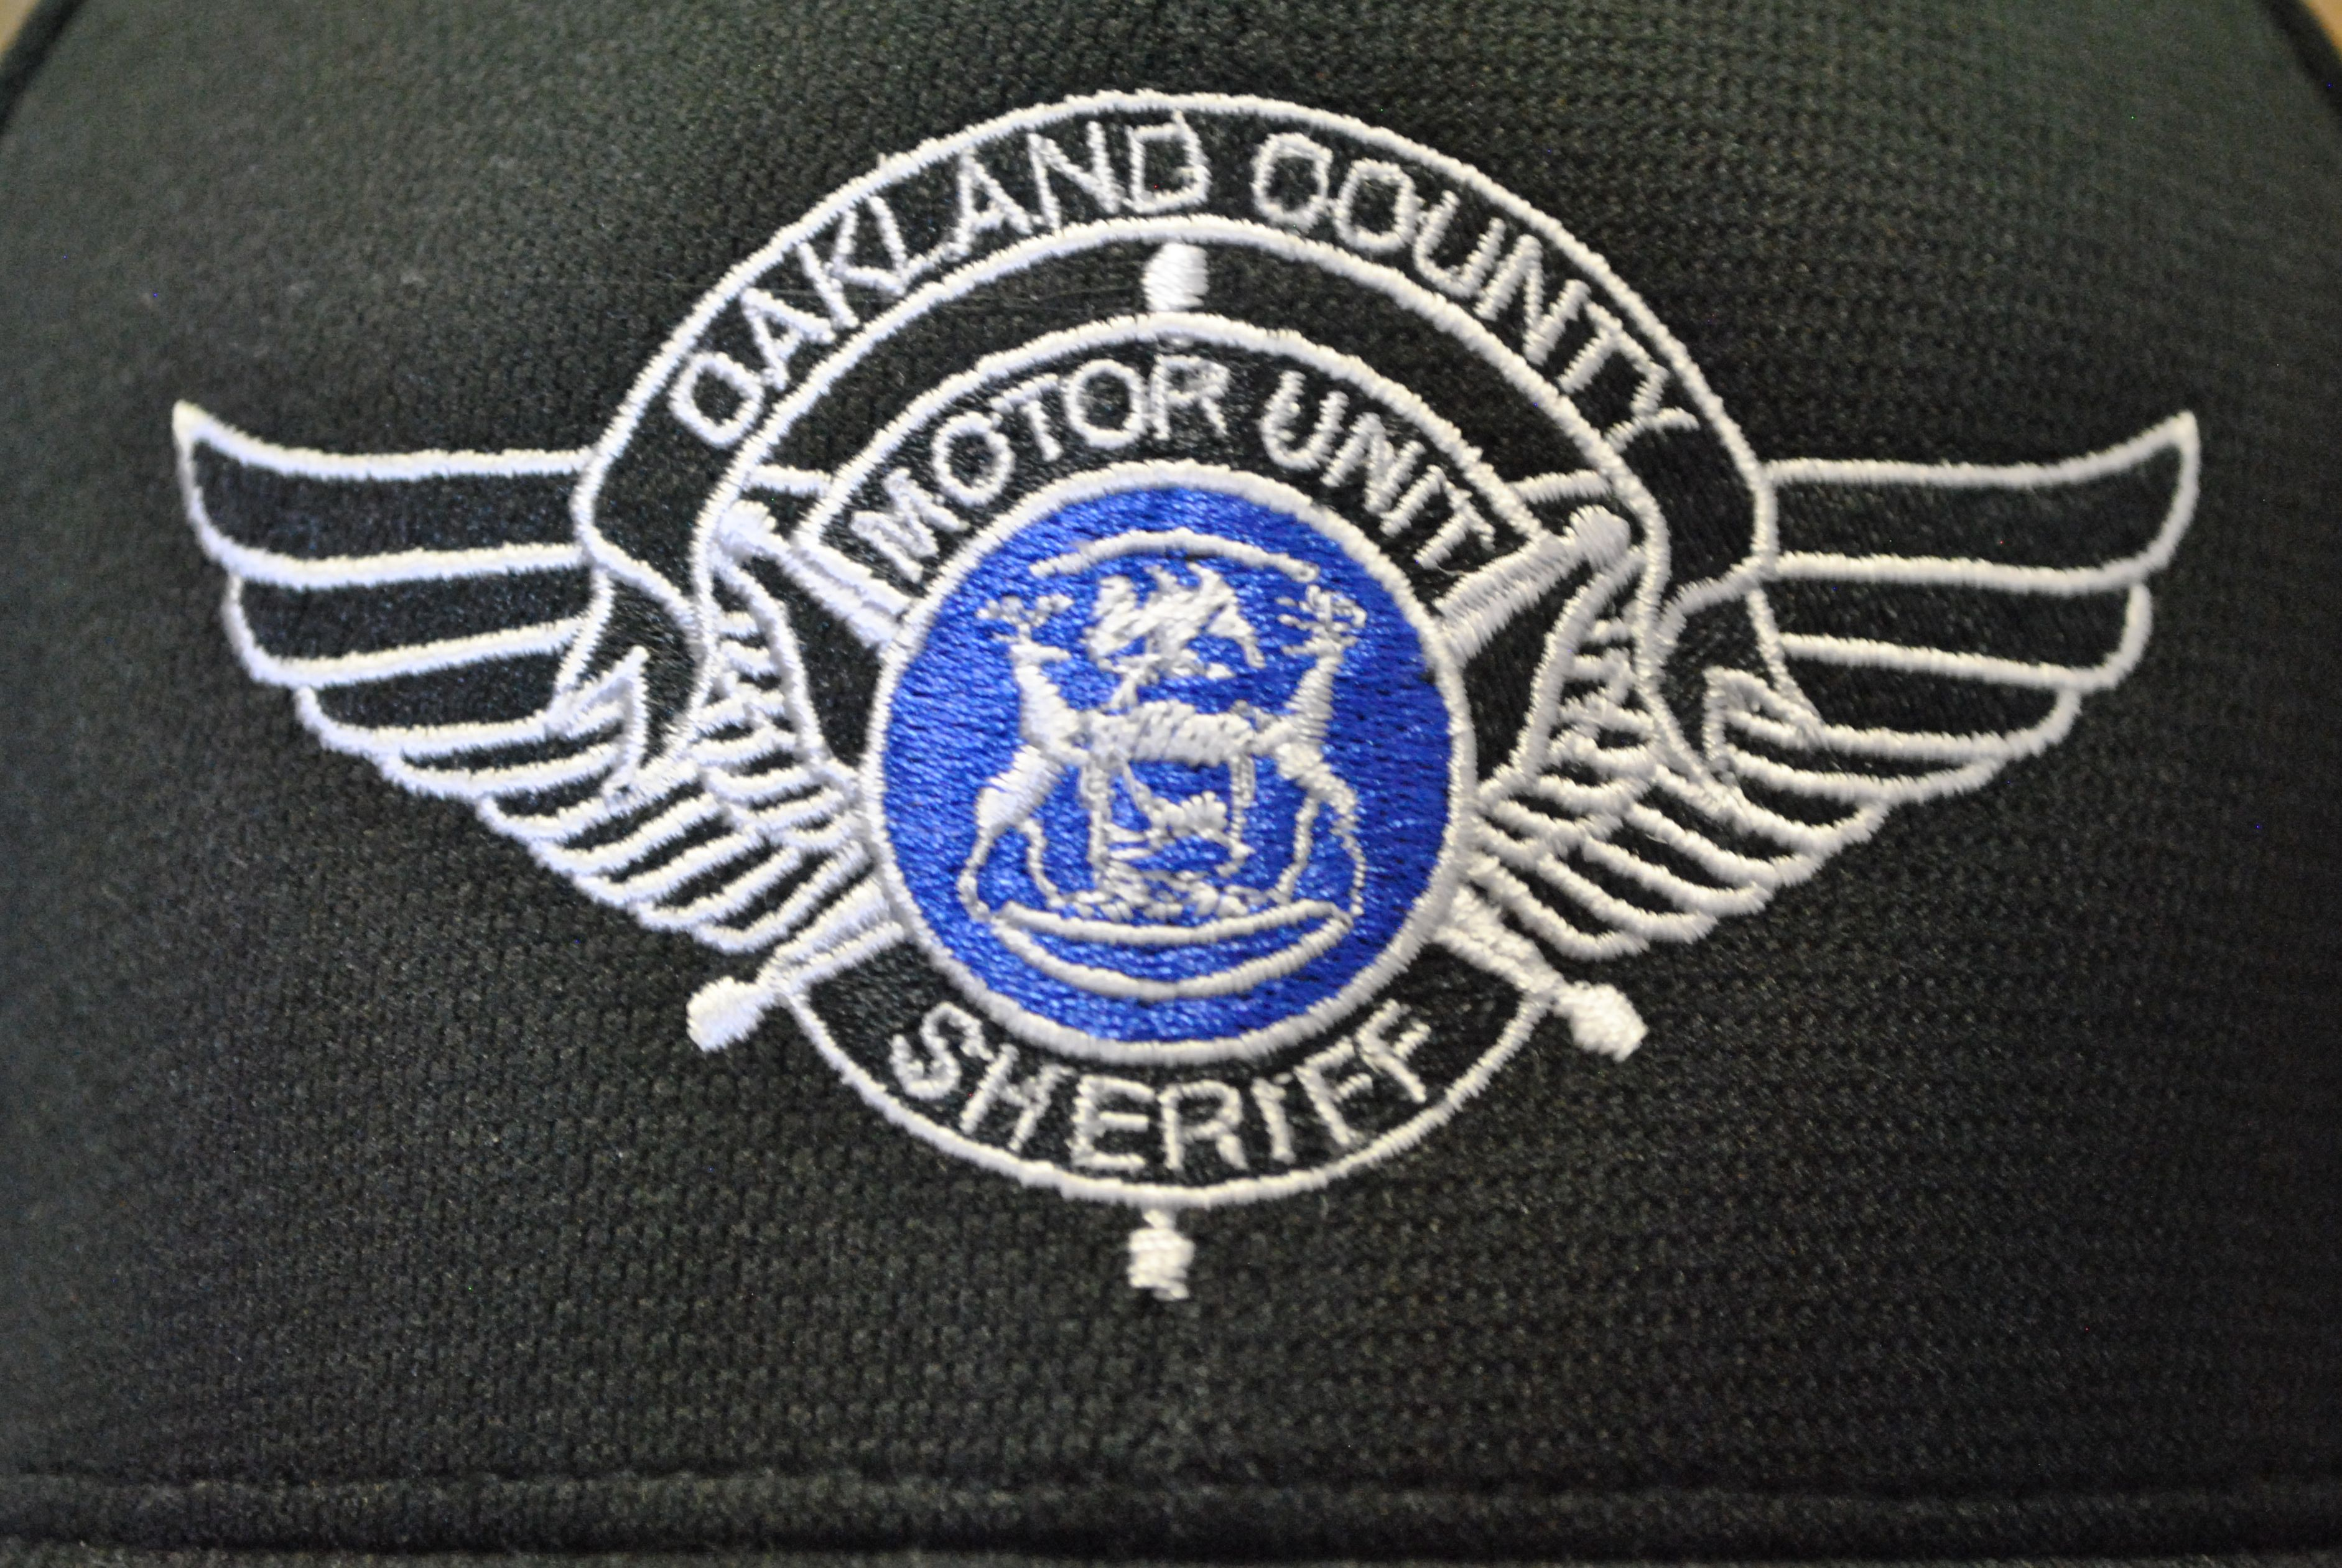 Oakland Country Sheriff Motor Unit Logo on Hat